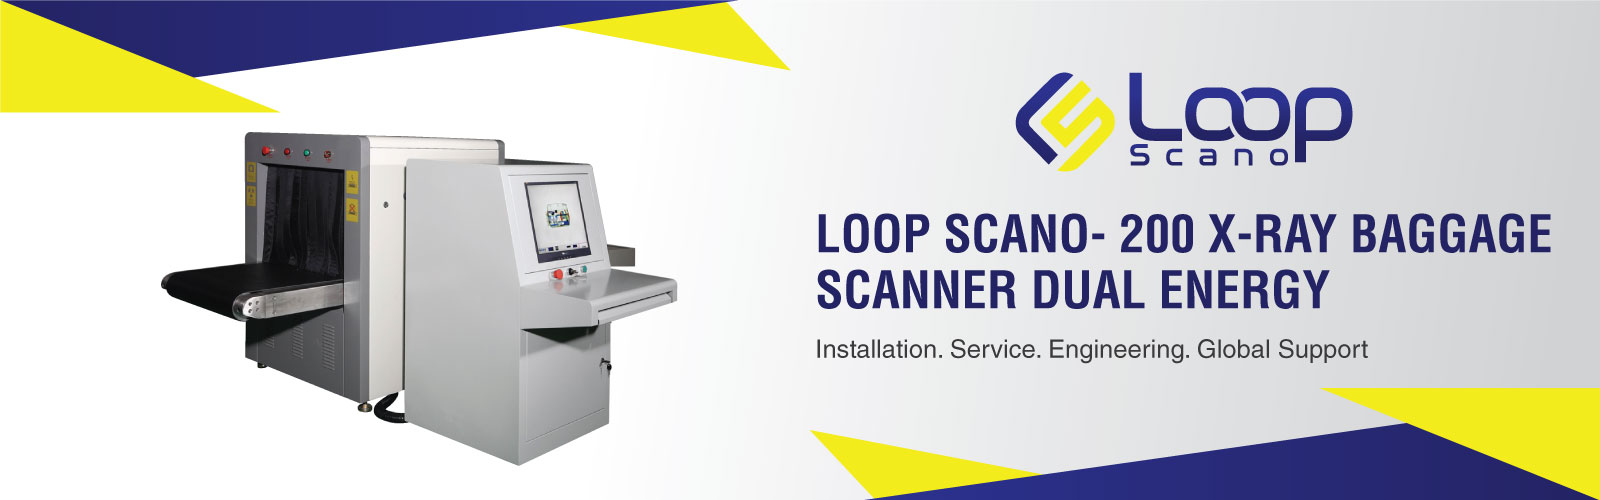 Loop Scano Baggage Scanner